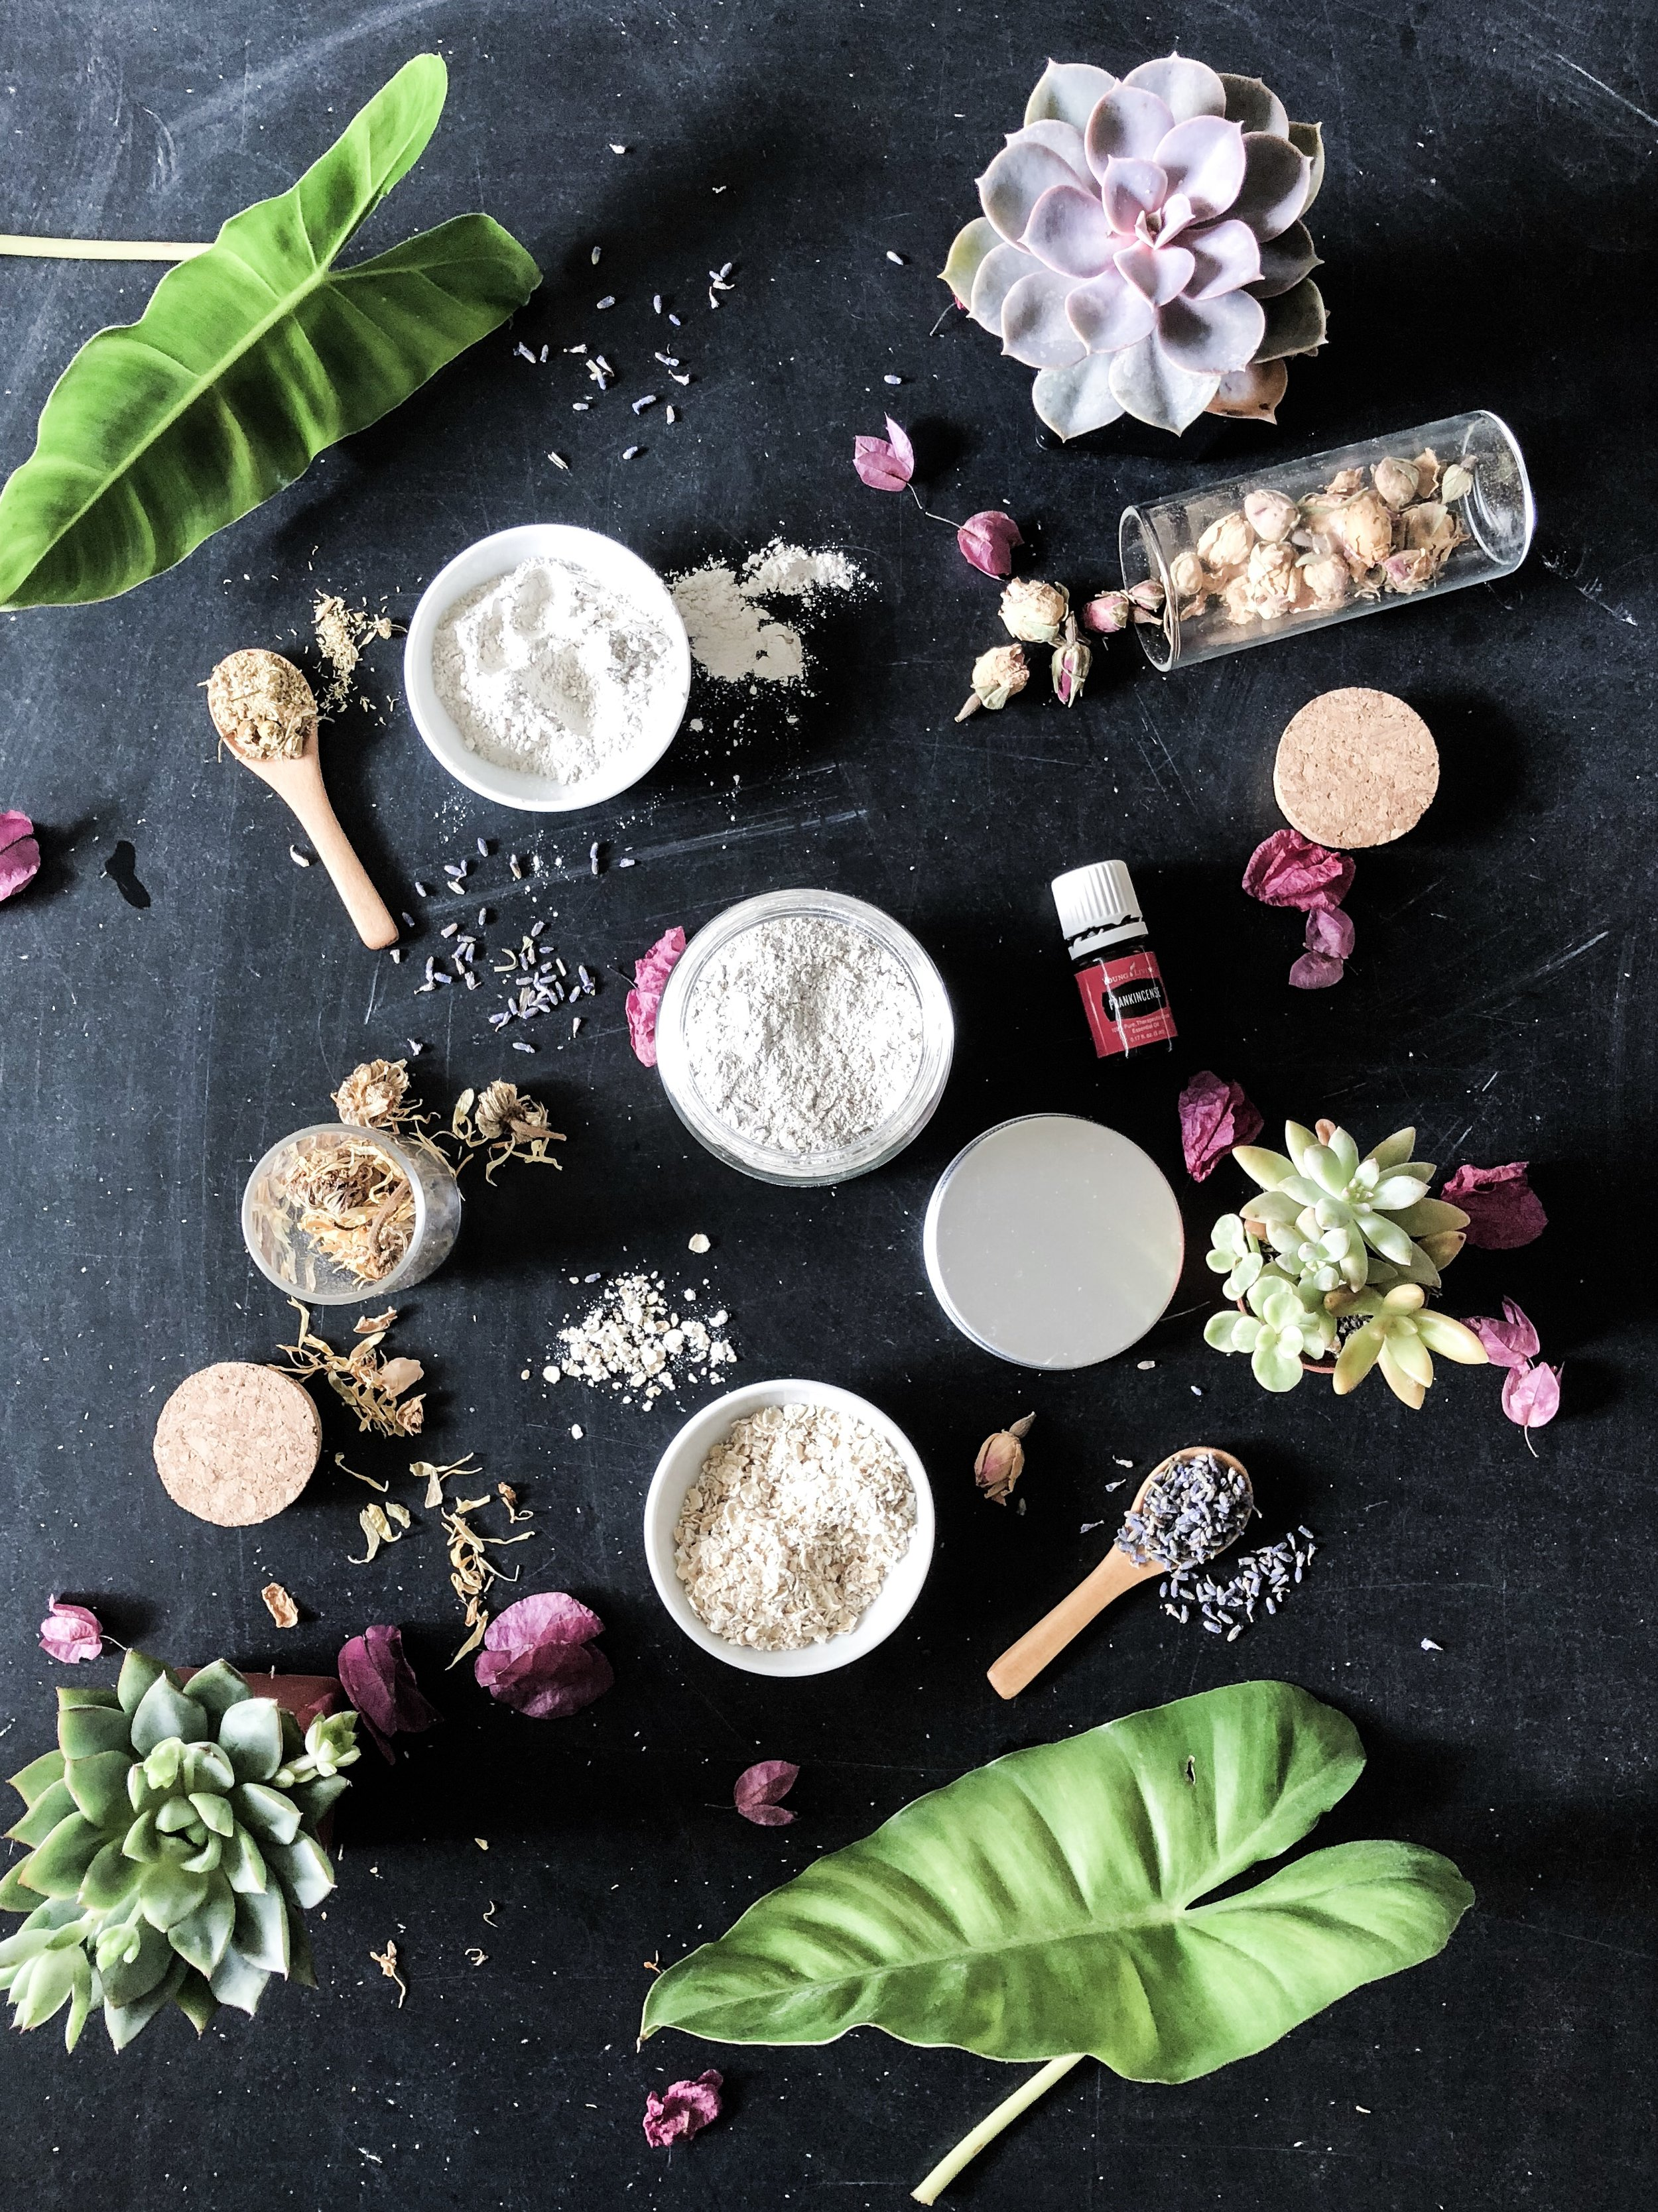 Bentonite Clay Face Mask - with Lavender, Rose, & Oats